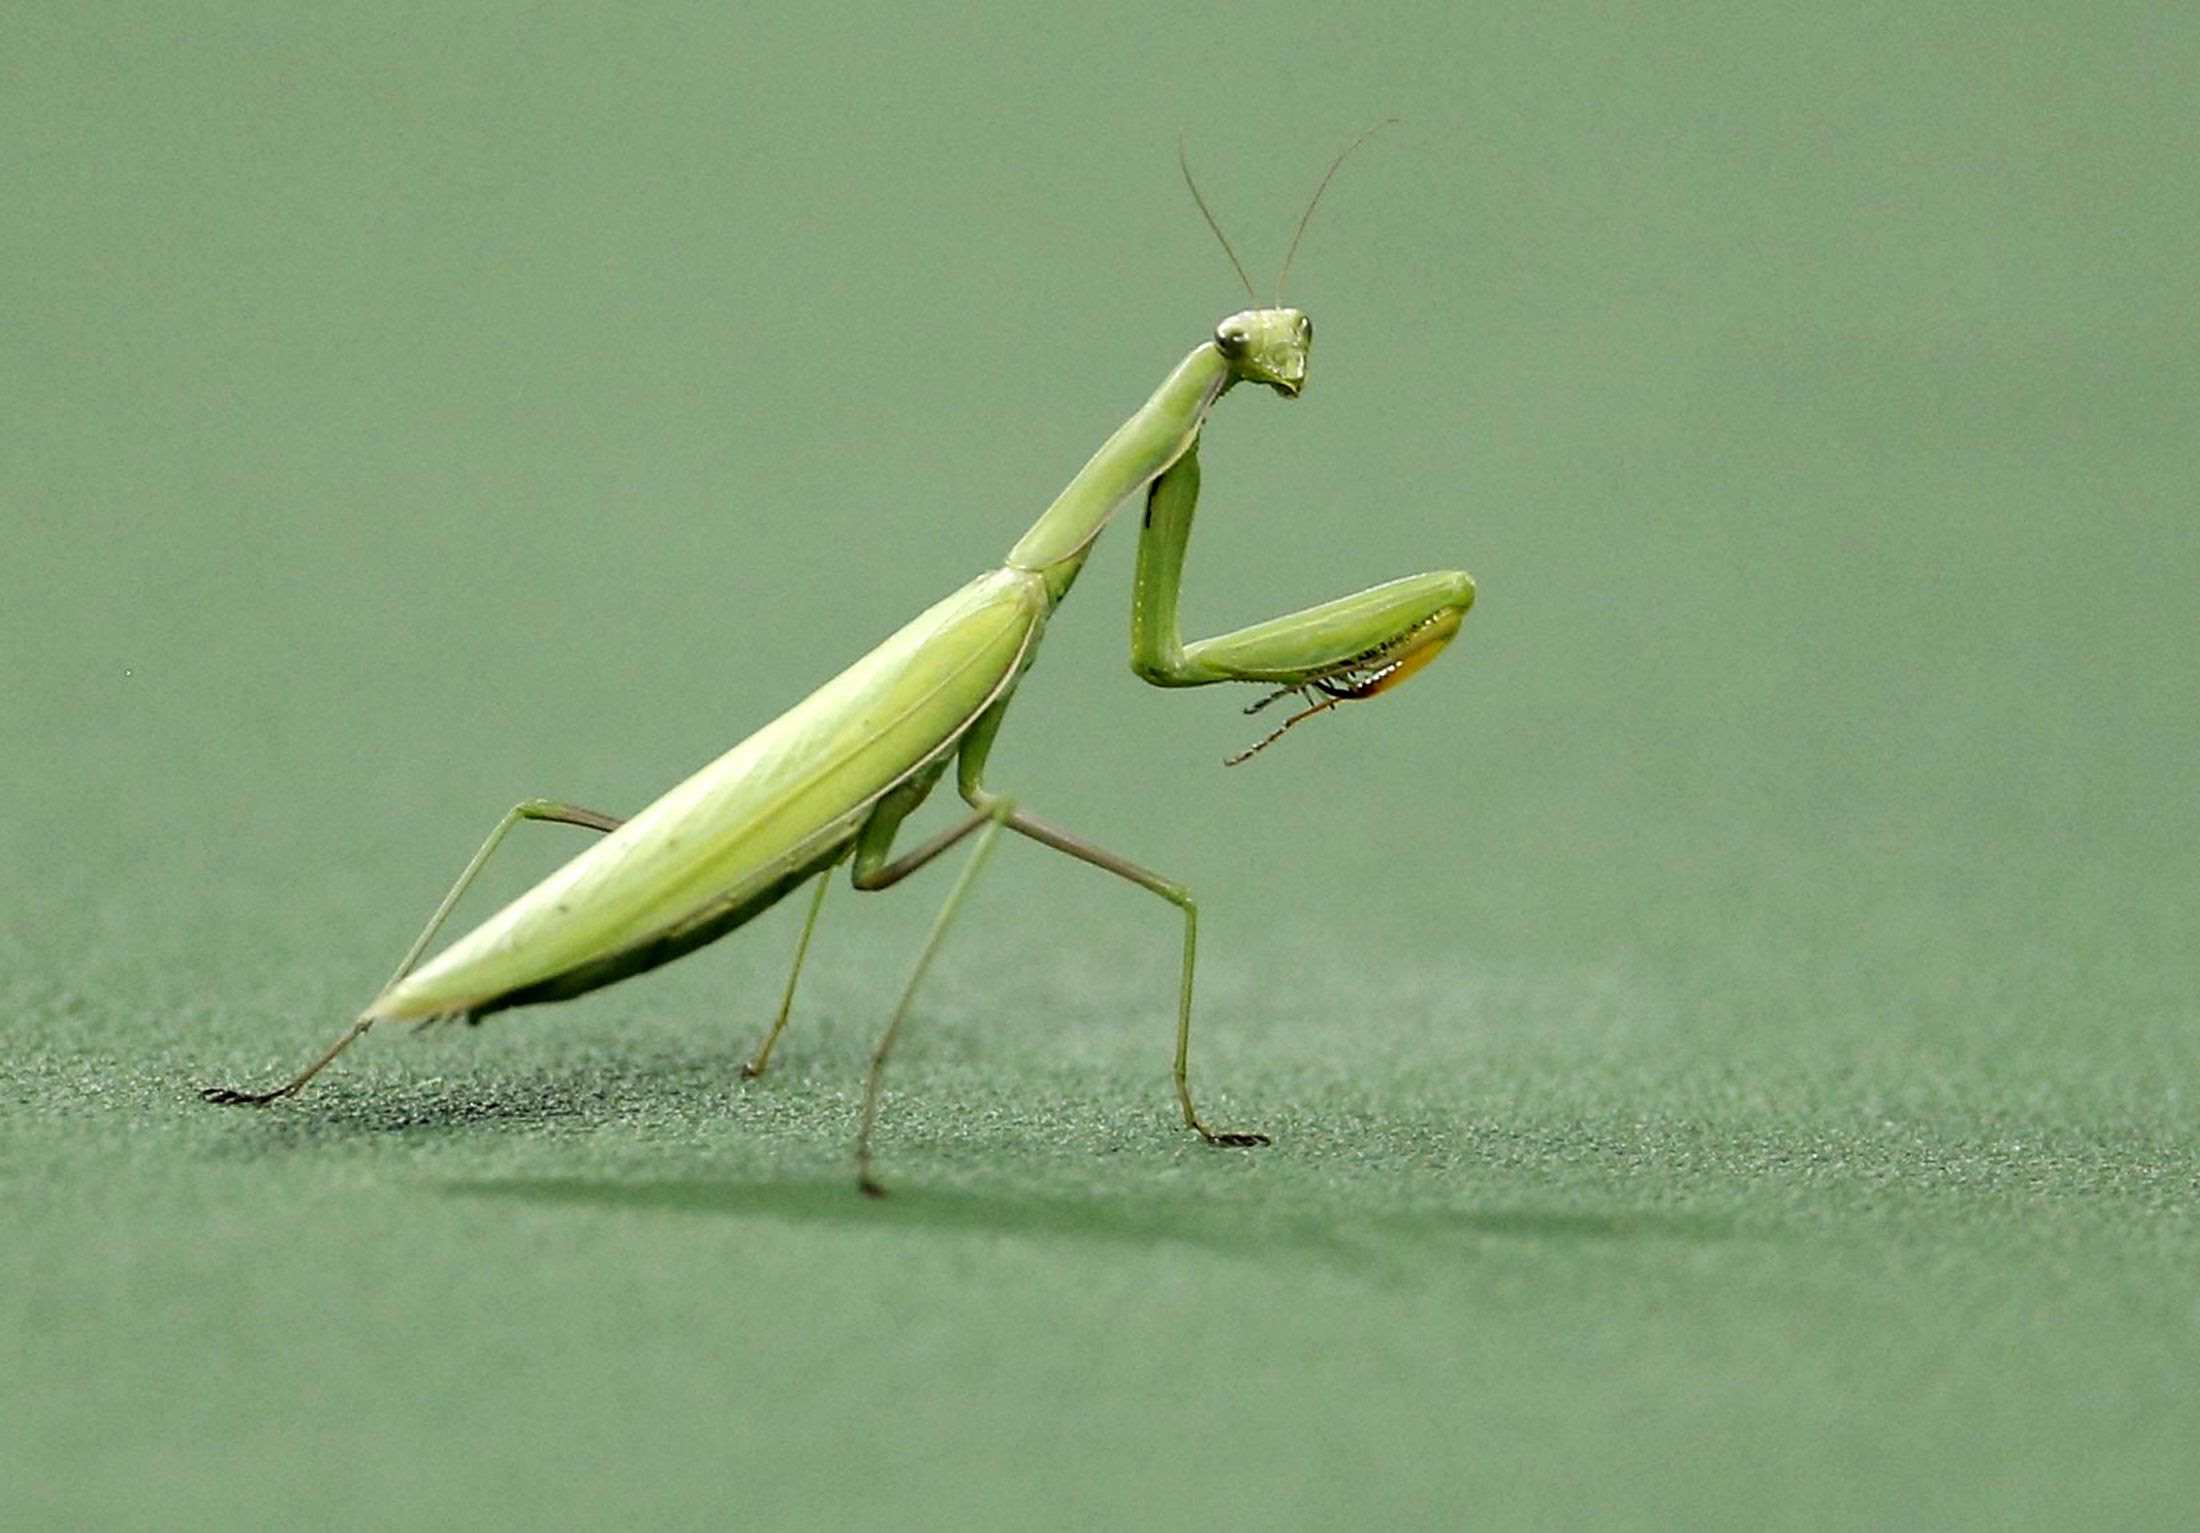 3-5-15 Praying mantis